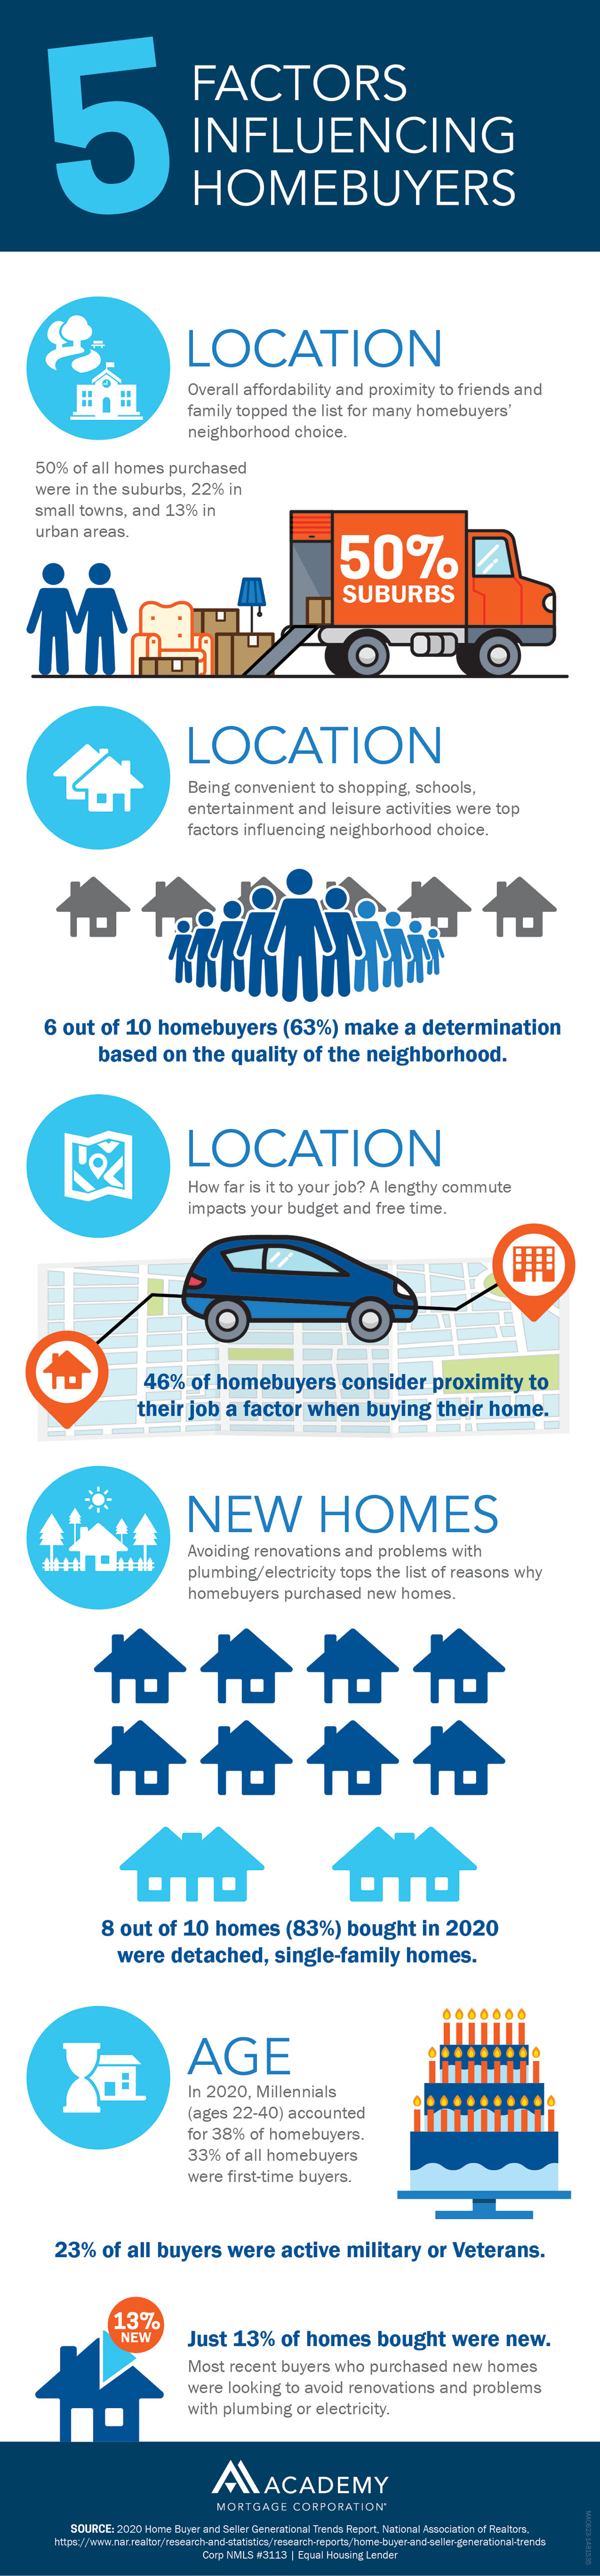 5-Factors-Influencing-Homebuyers-Infographic-FINAL-1200px